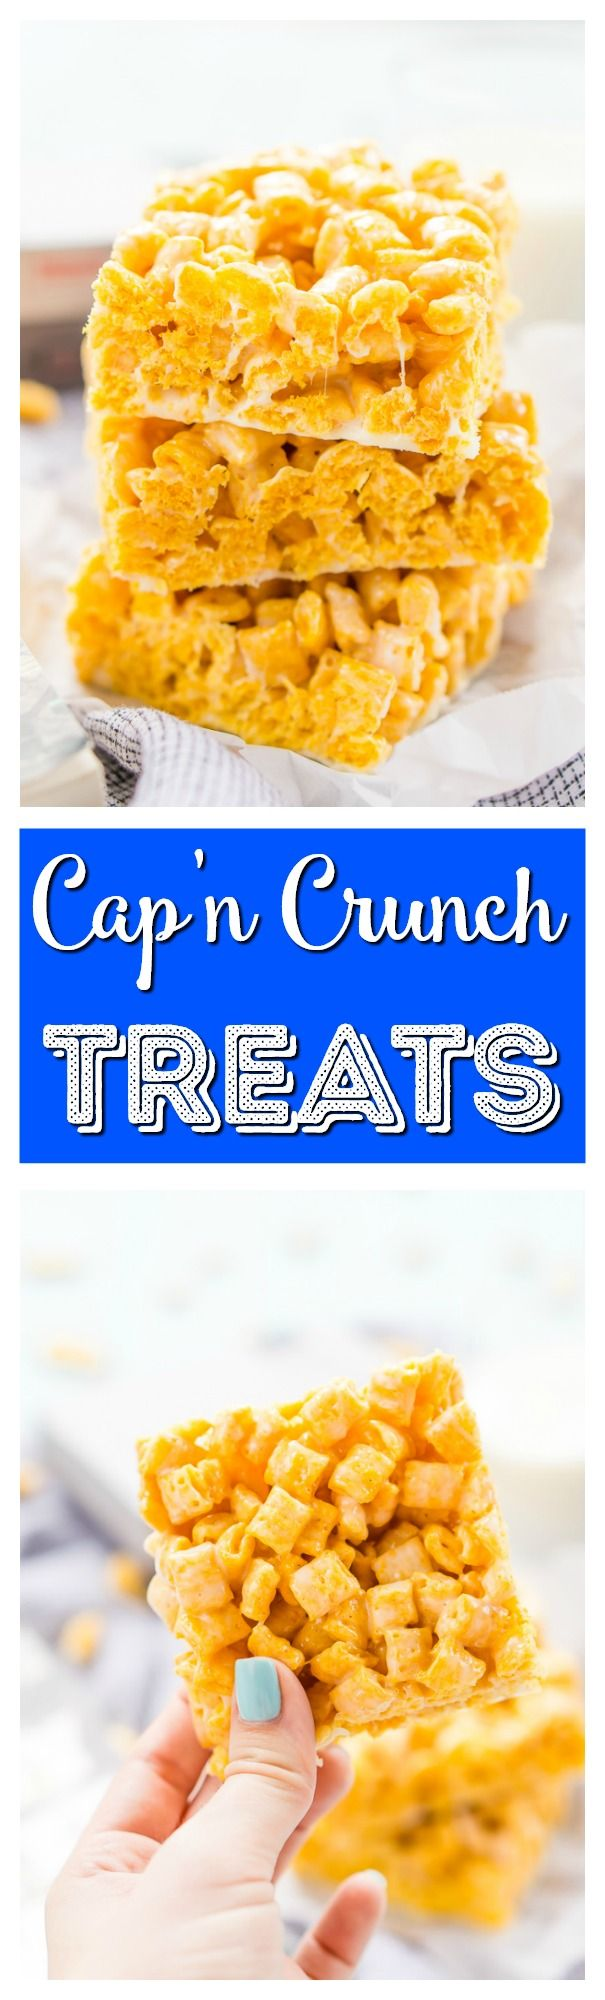 These Cap'n Crunch Treats are a fun twist on classic rice krispies treats and inspired by the book Ready Player One by Ernest Cline. They're the perfect fast dessert or afternoon snack and Cap'n Crunch lovers will go crazy over them! via @sugarandsoulco